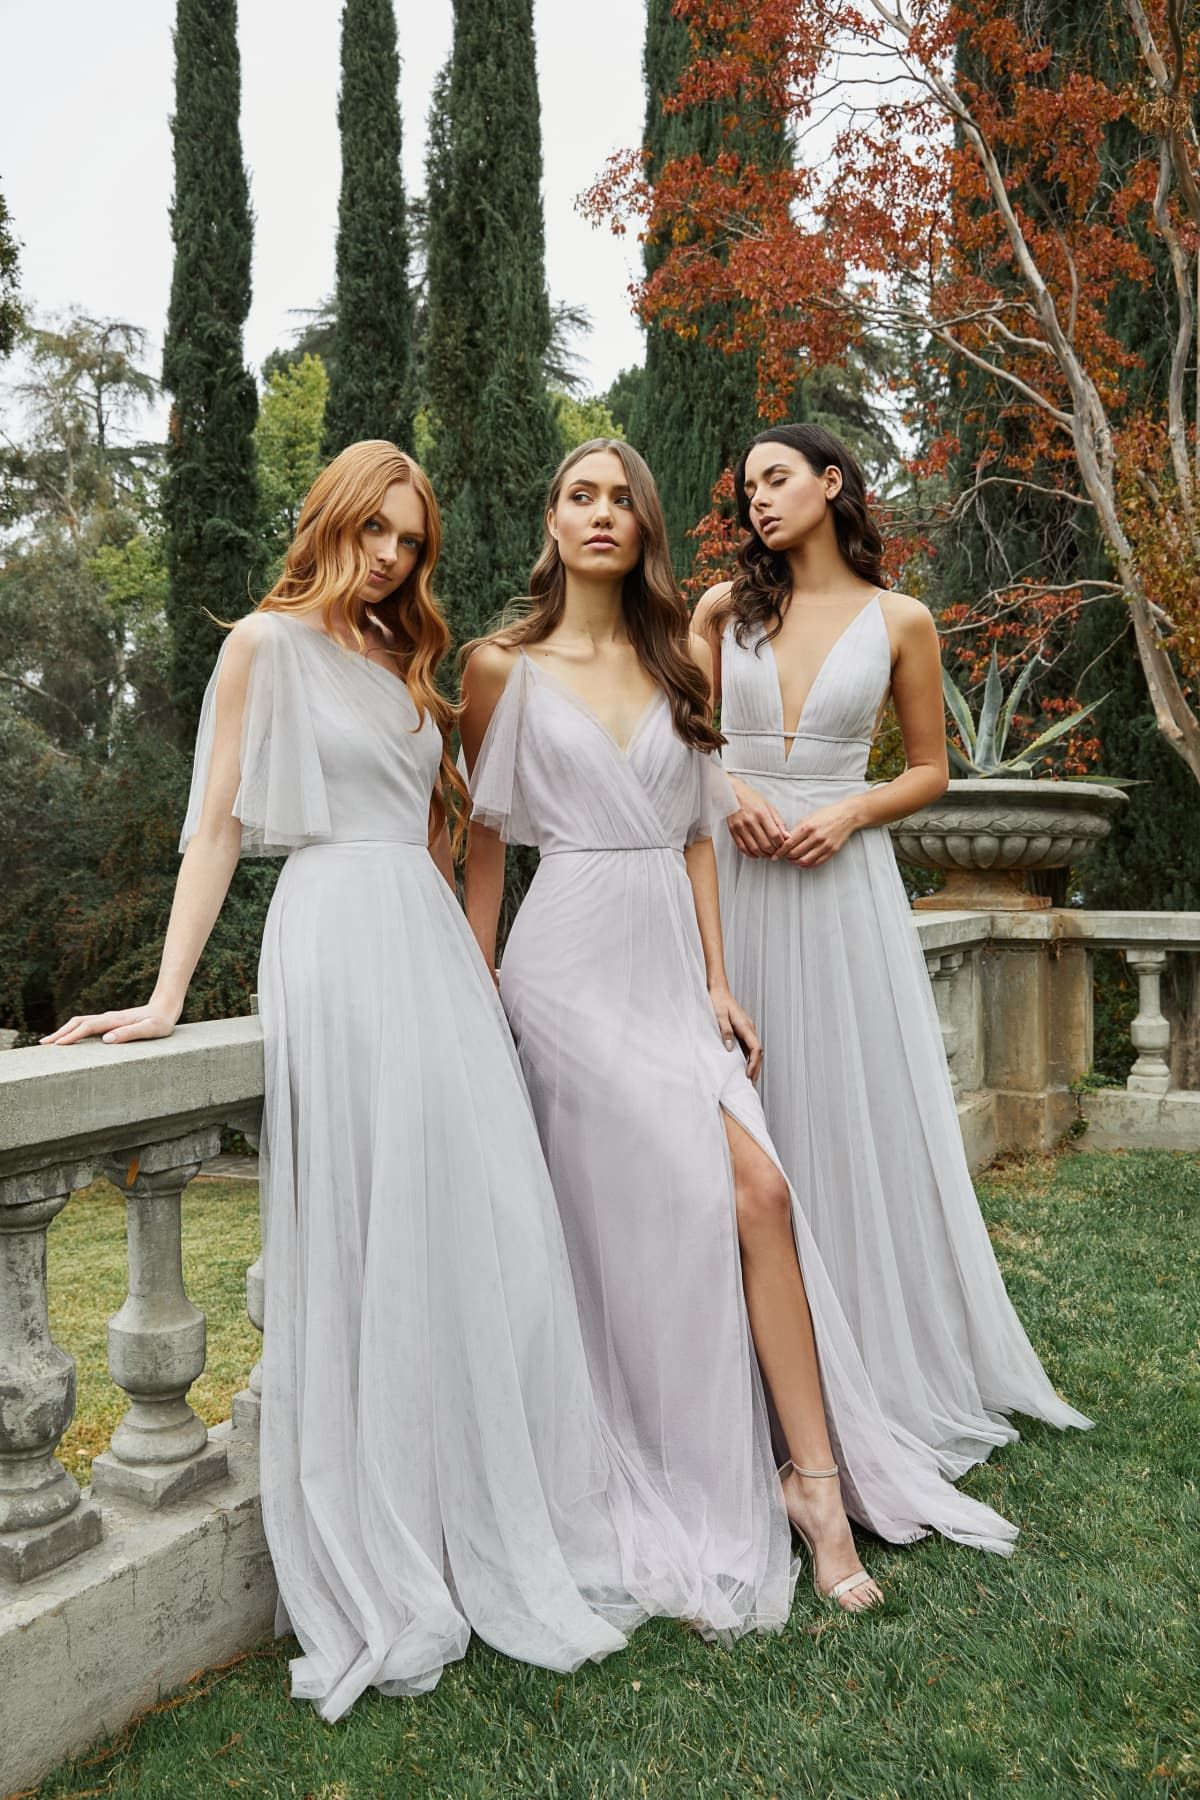 Jenny Yoo Collection Bridesmaid Dresses Spring 2020 Dress For The Wedding Spring Bridesmaid Dresses Different Bridesmaid Dresses Bridesmaid Dresses [ 1800 x 1200 Pixel ]